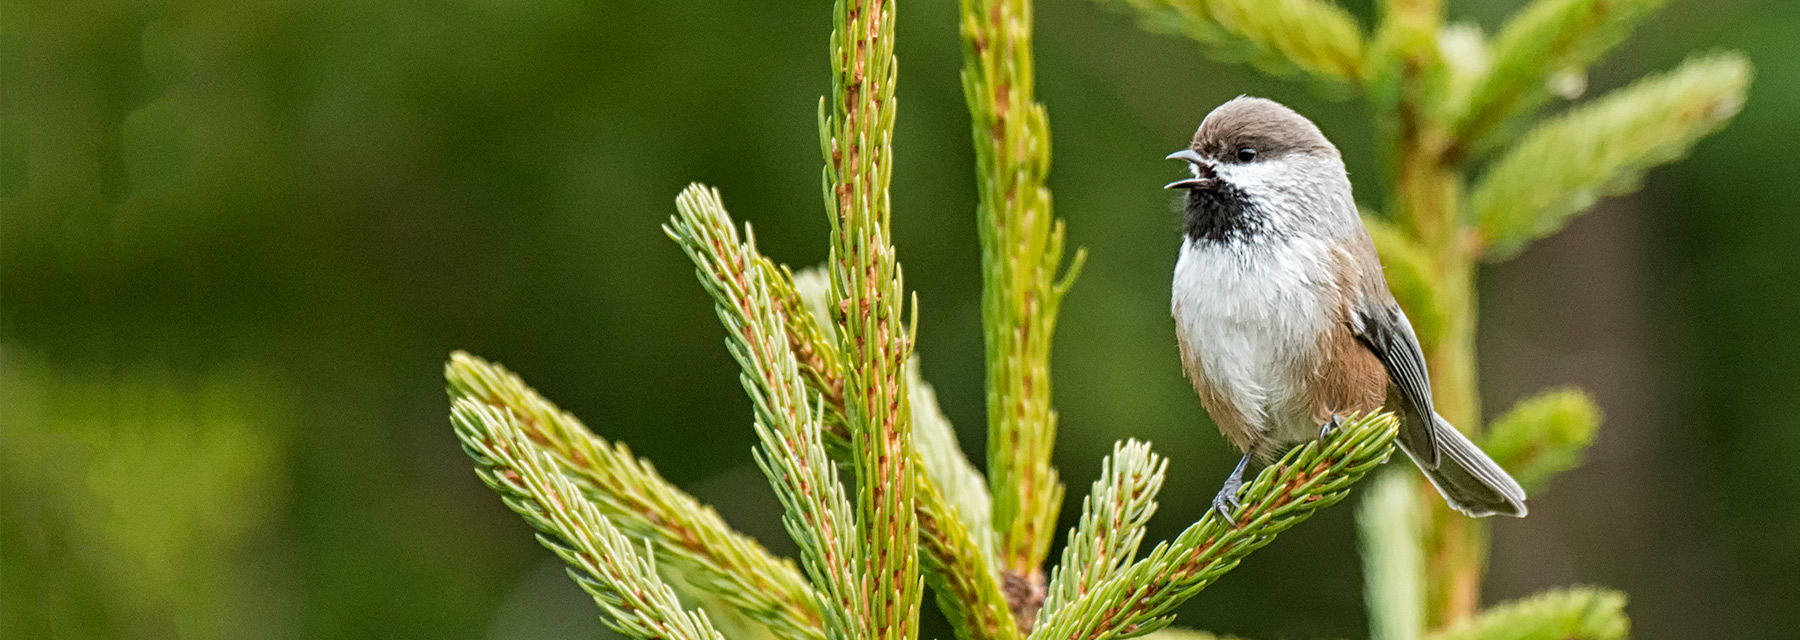 Boreal Chickadee Katahdin Woods and Waters National Monument by Anita Mueller